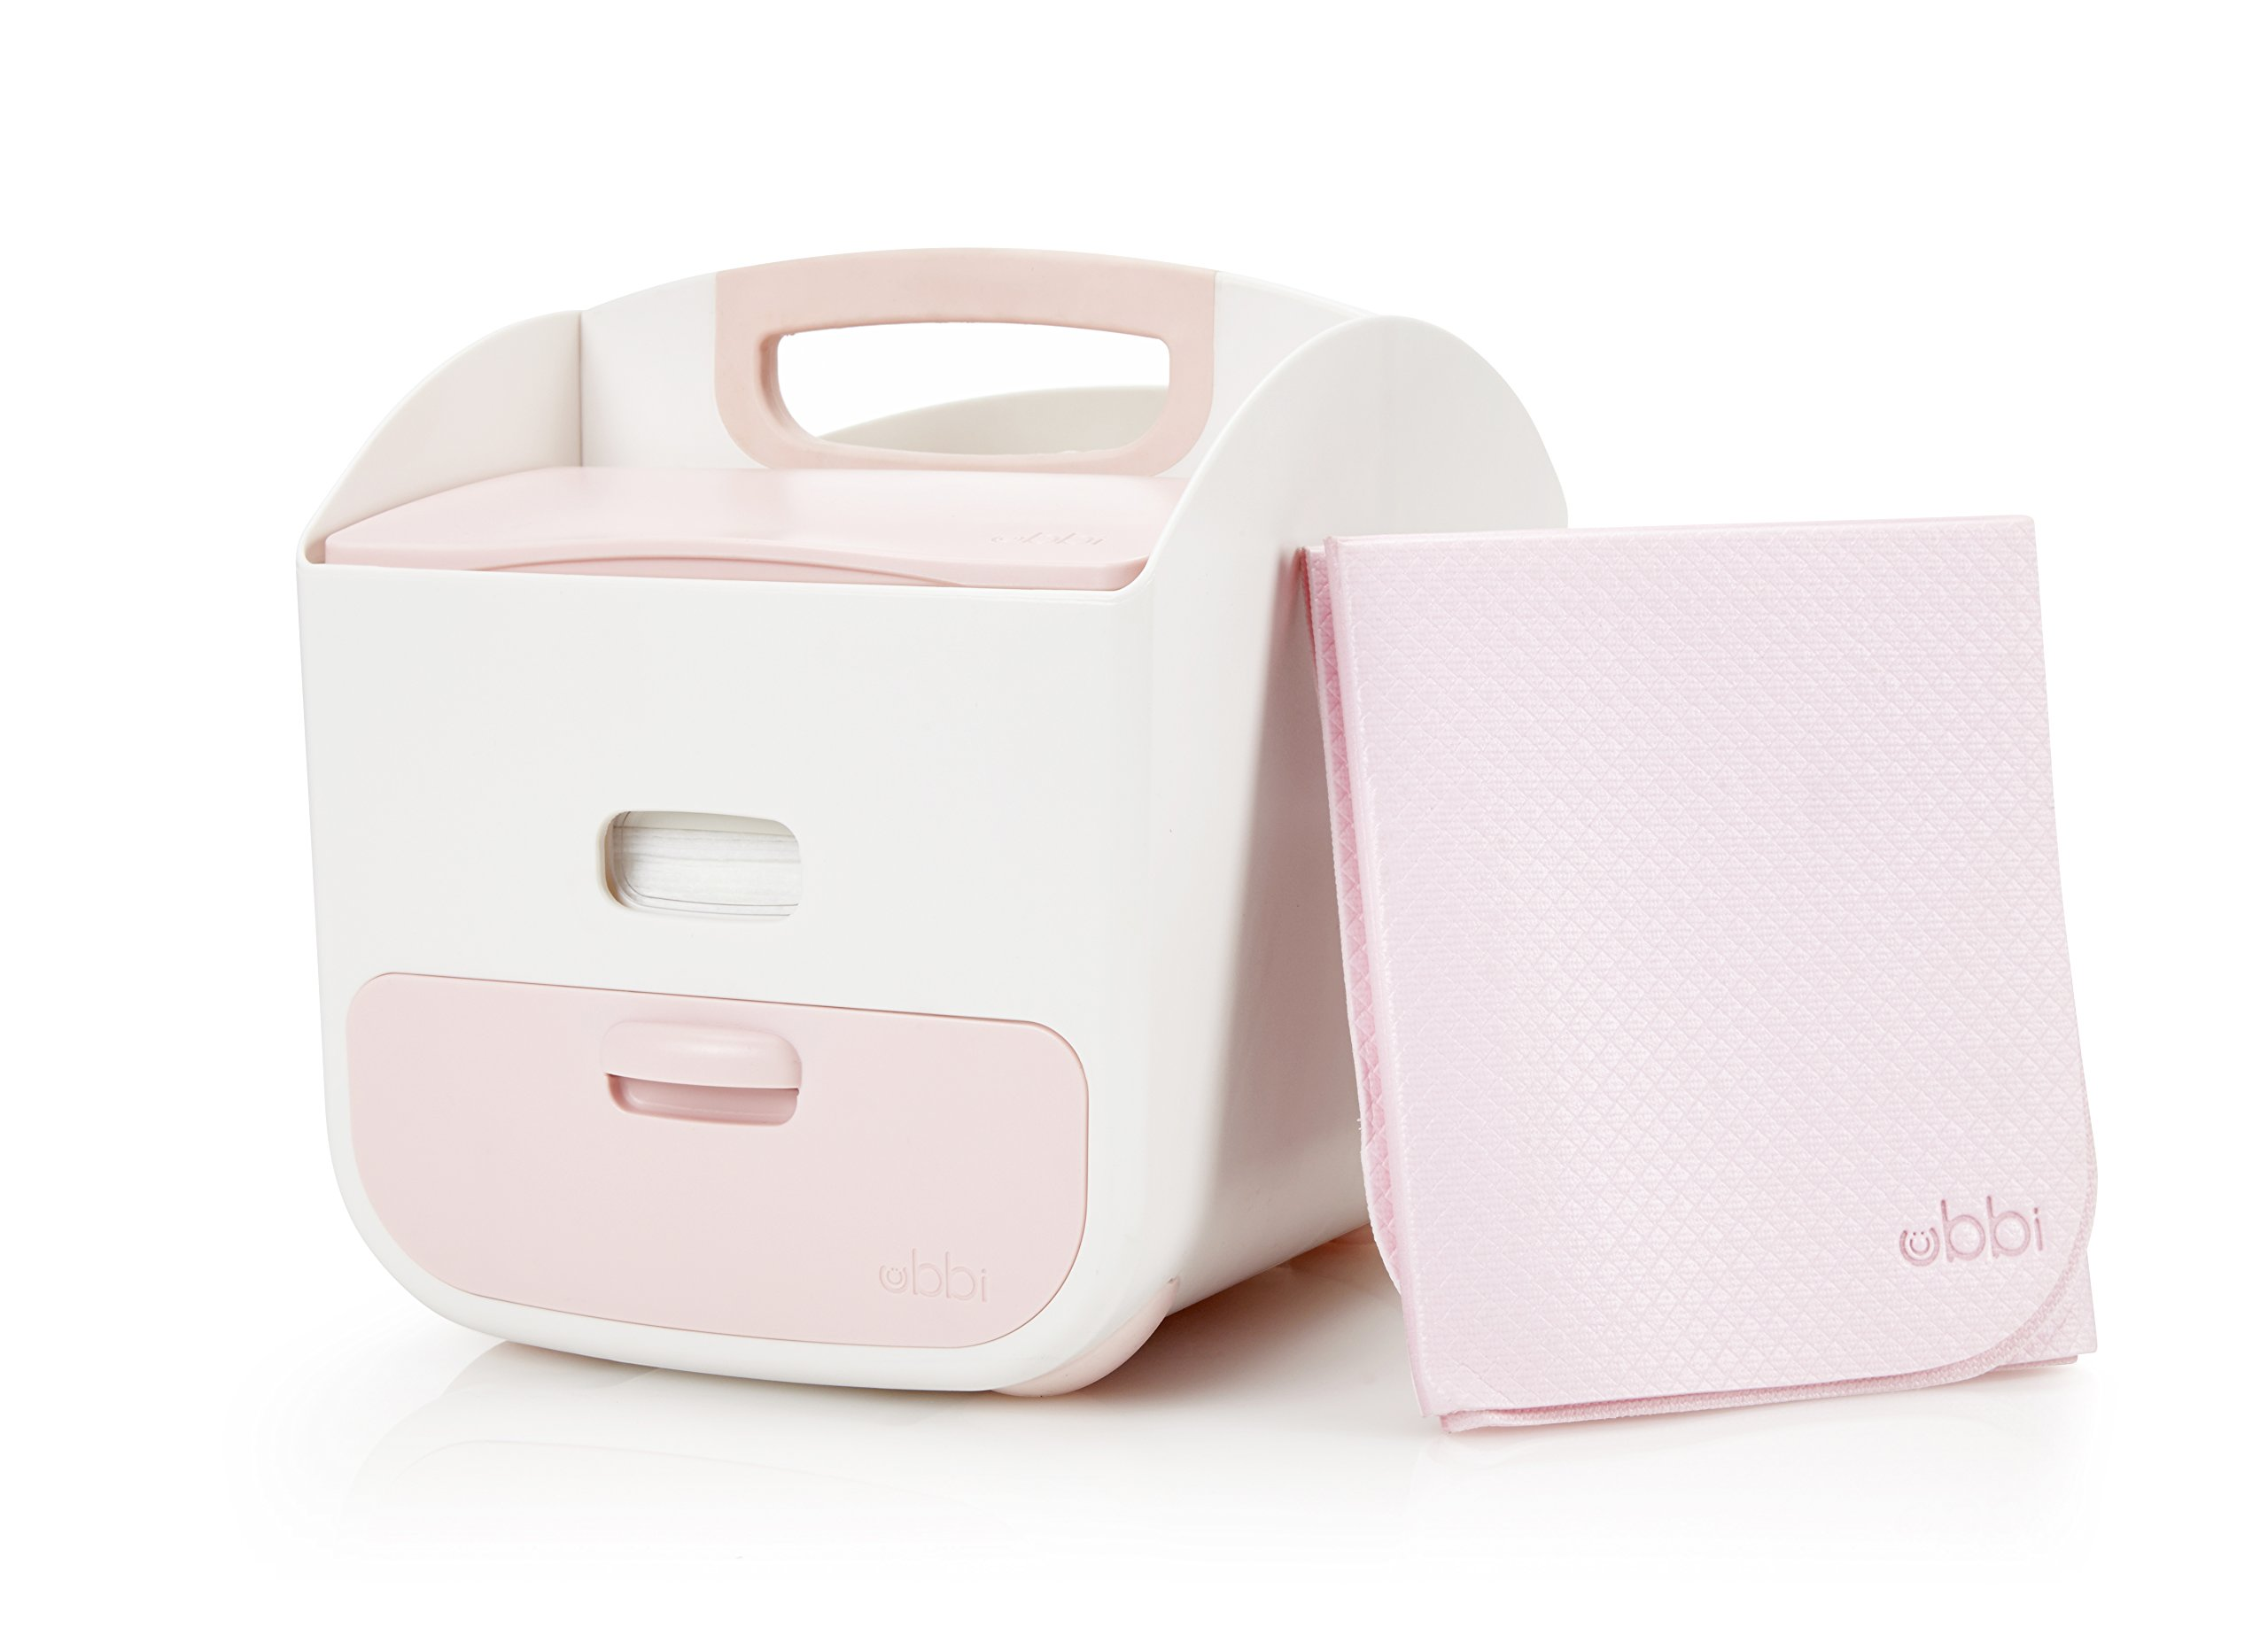 Ubbi Diaper Storage Caddy Wipes Dispenser and Changing Mat Set, Pink